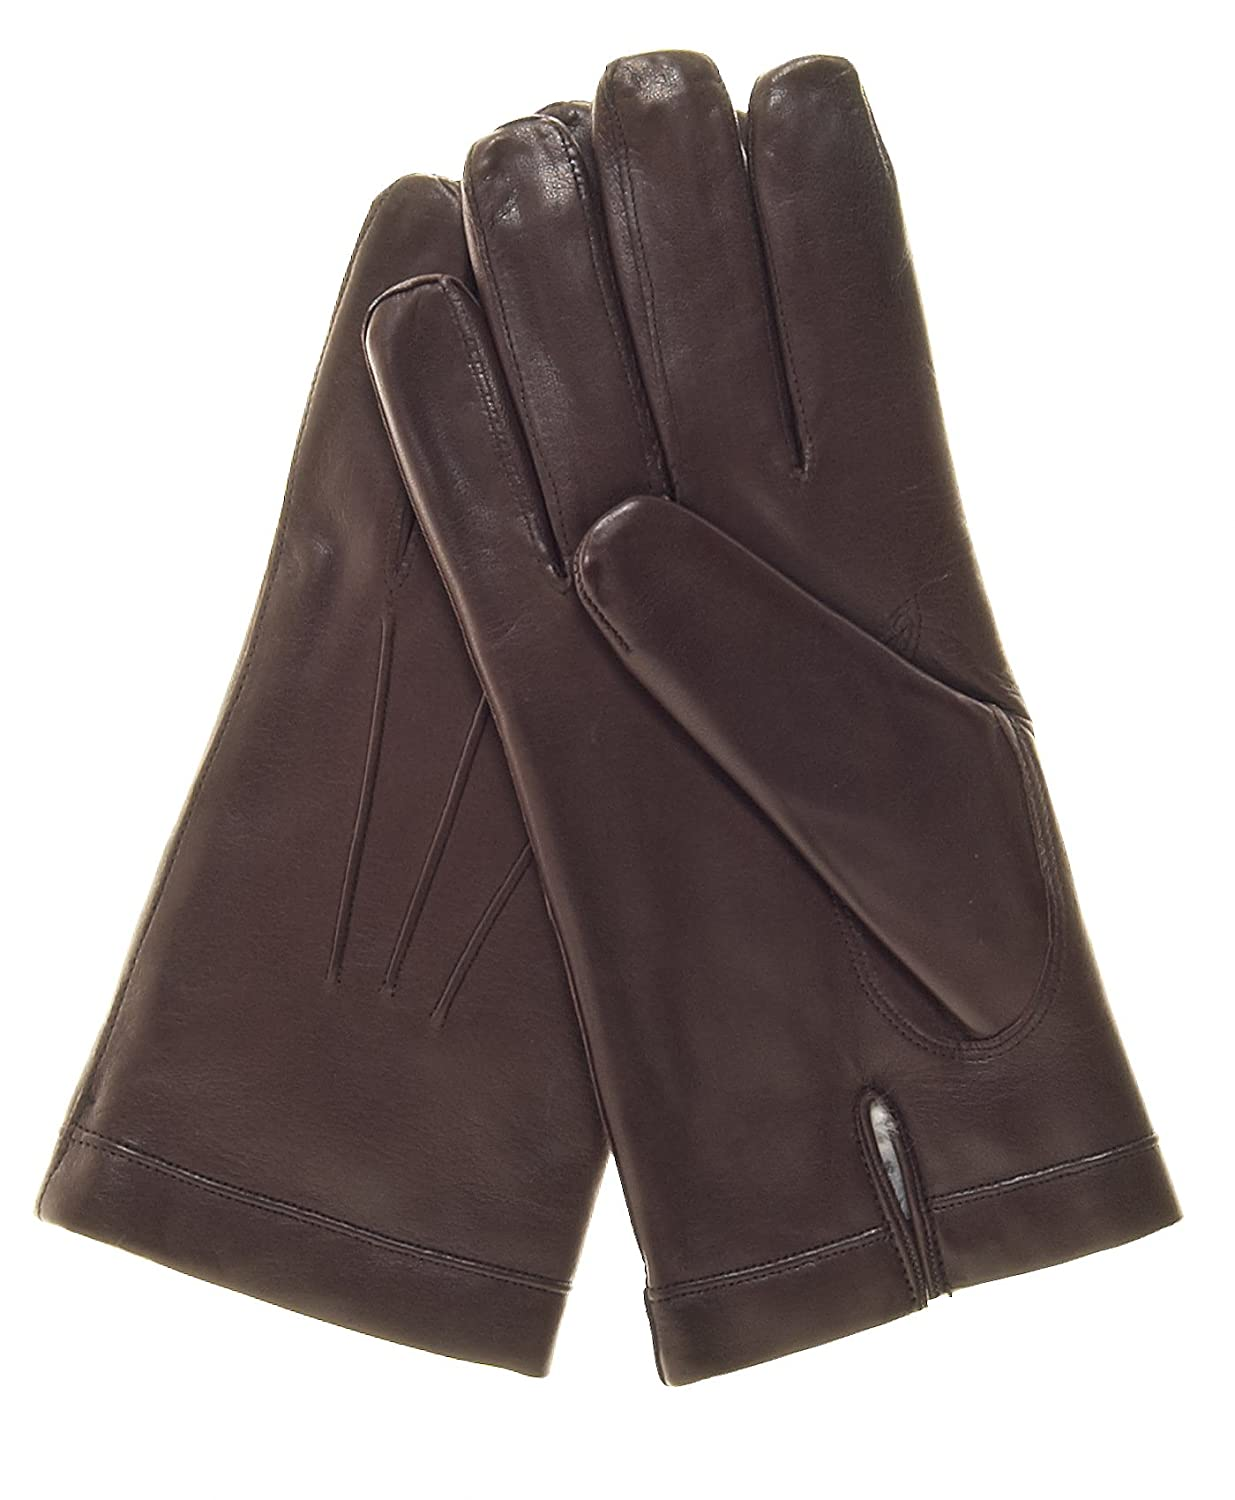 Overstock mens leather gloves - Fratelli Orsini Men S Italian Rabbit Fur Lined Leather Gloves Size 7 Color Brown At Amazon Men S Clothing Store Cold Weather Gloves